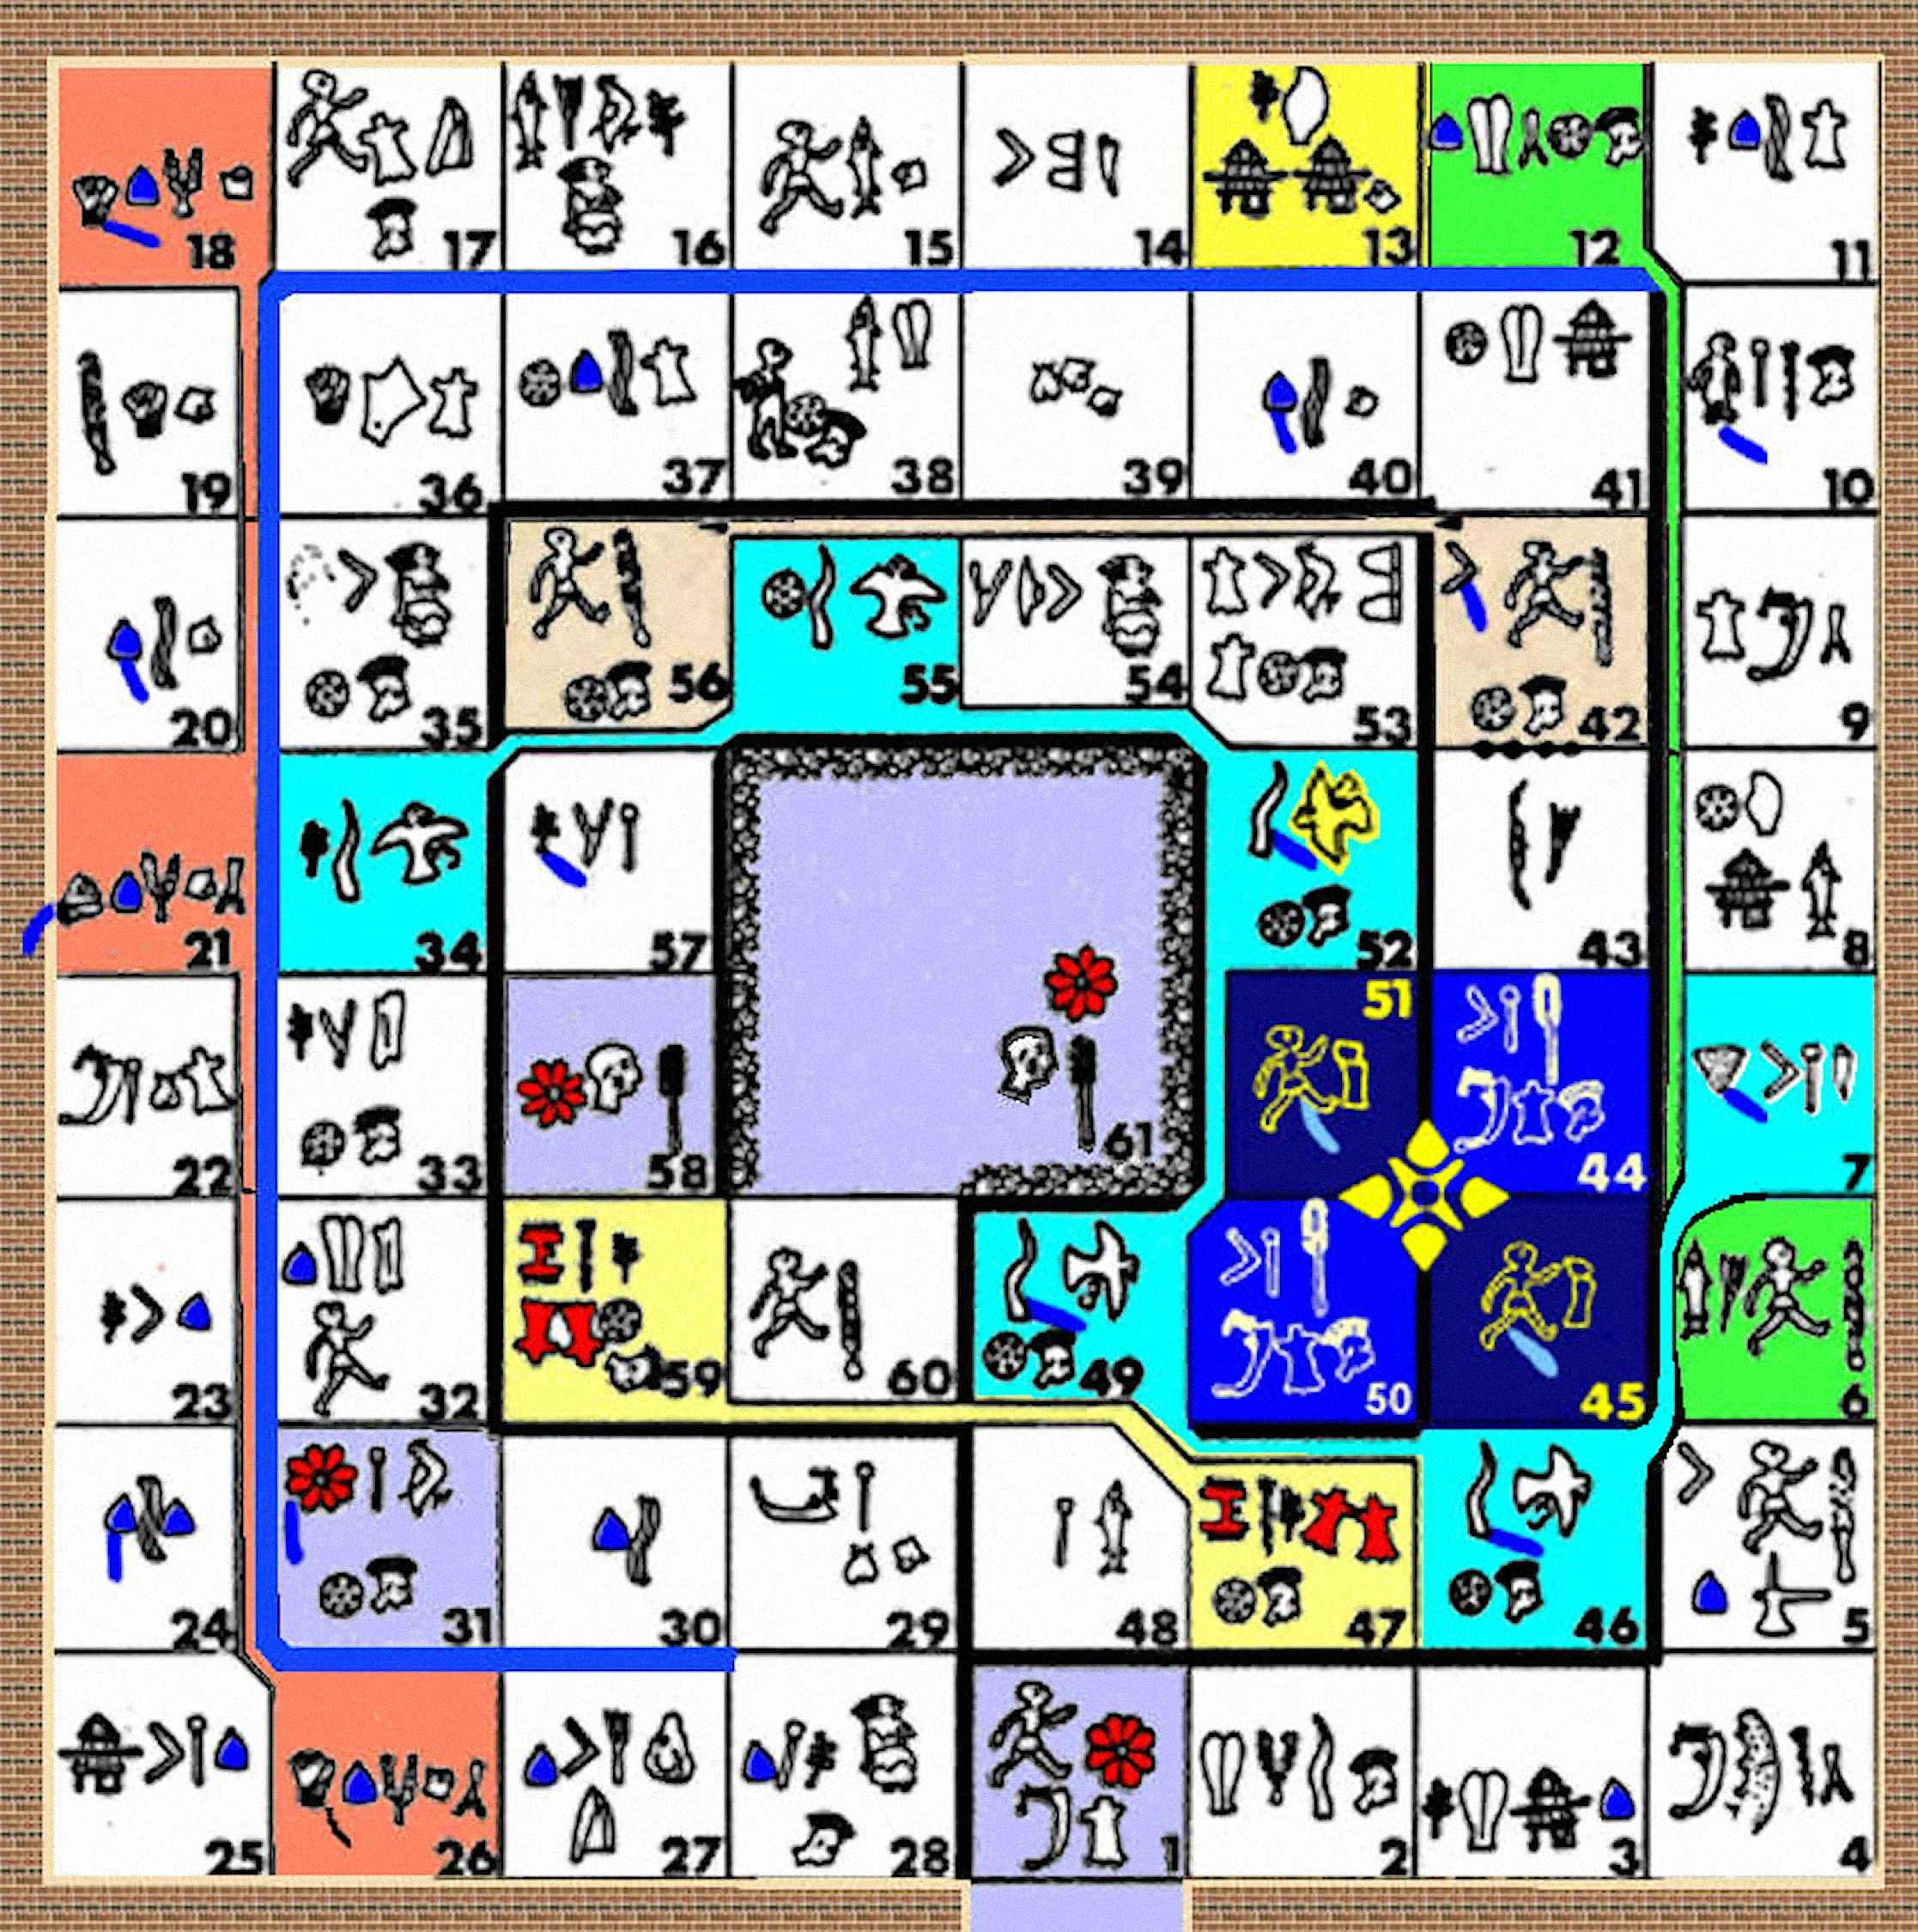 Game color chart - Game Color Paths The Above Sky Chart And Religious Gameboard Is Formed By Joining End